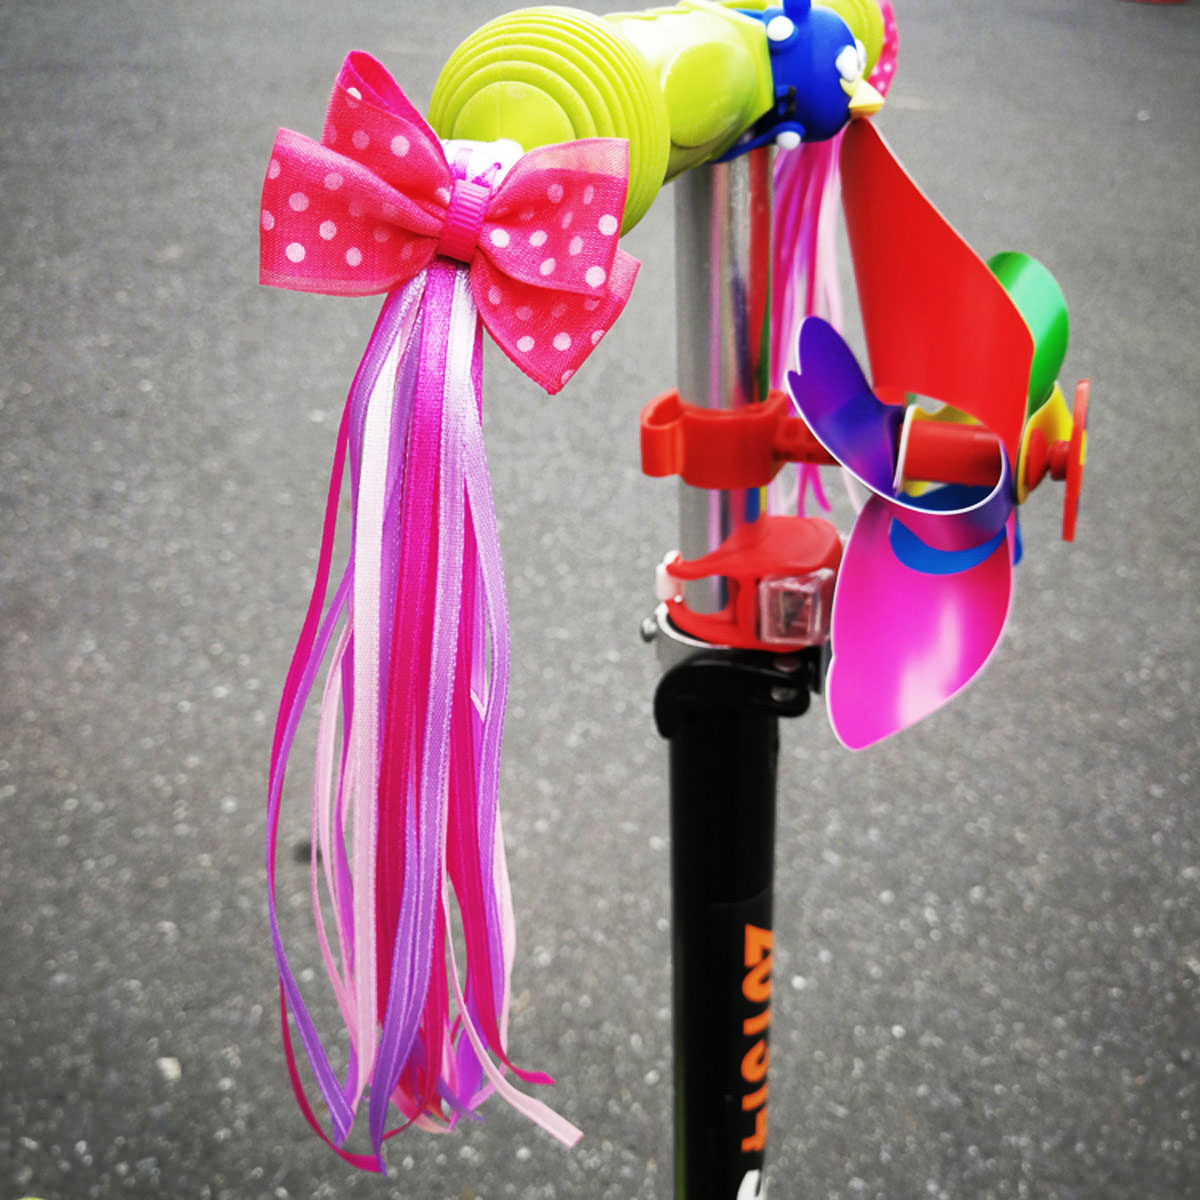 2Pcs Bicycle Scooter Front Handlebar Tassel Ribbon Decoration for Girls MINI-FACTORY Kids Bike Streamers Pink Pearl Star Flowers